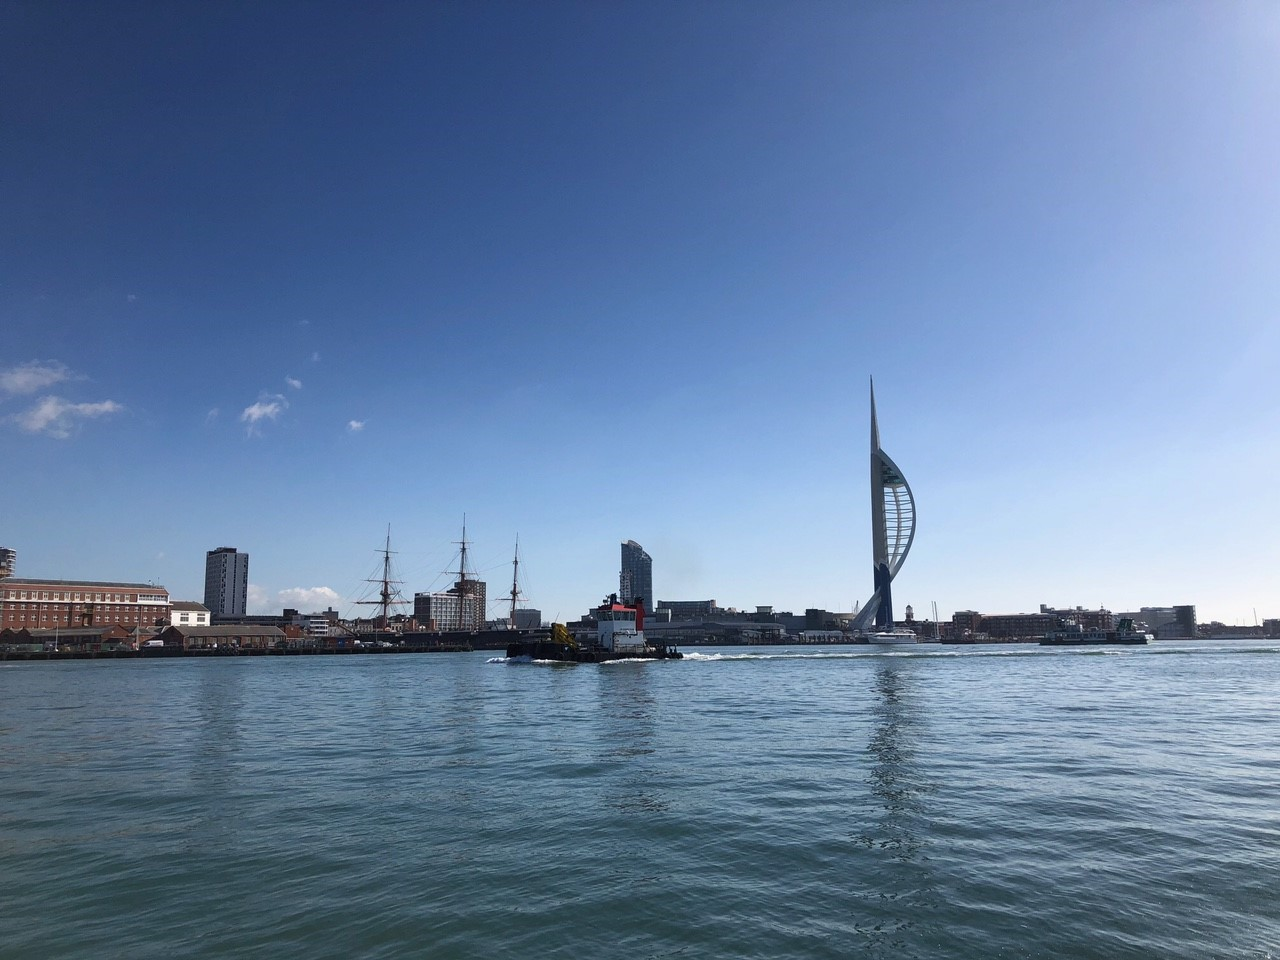 Portsmouth from the ocean from Wetwheels powerboat.